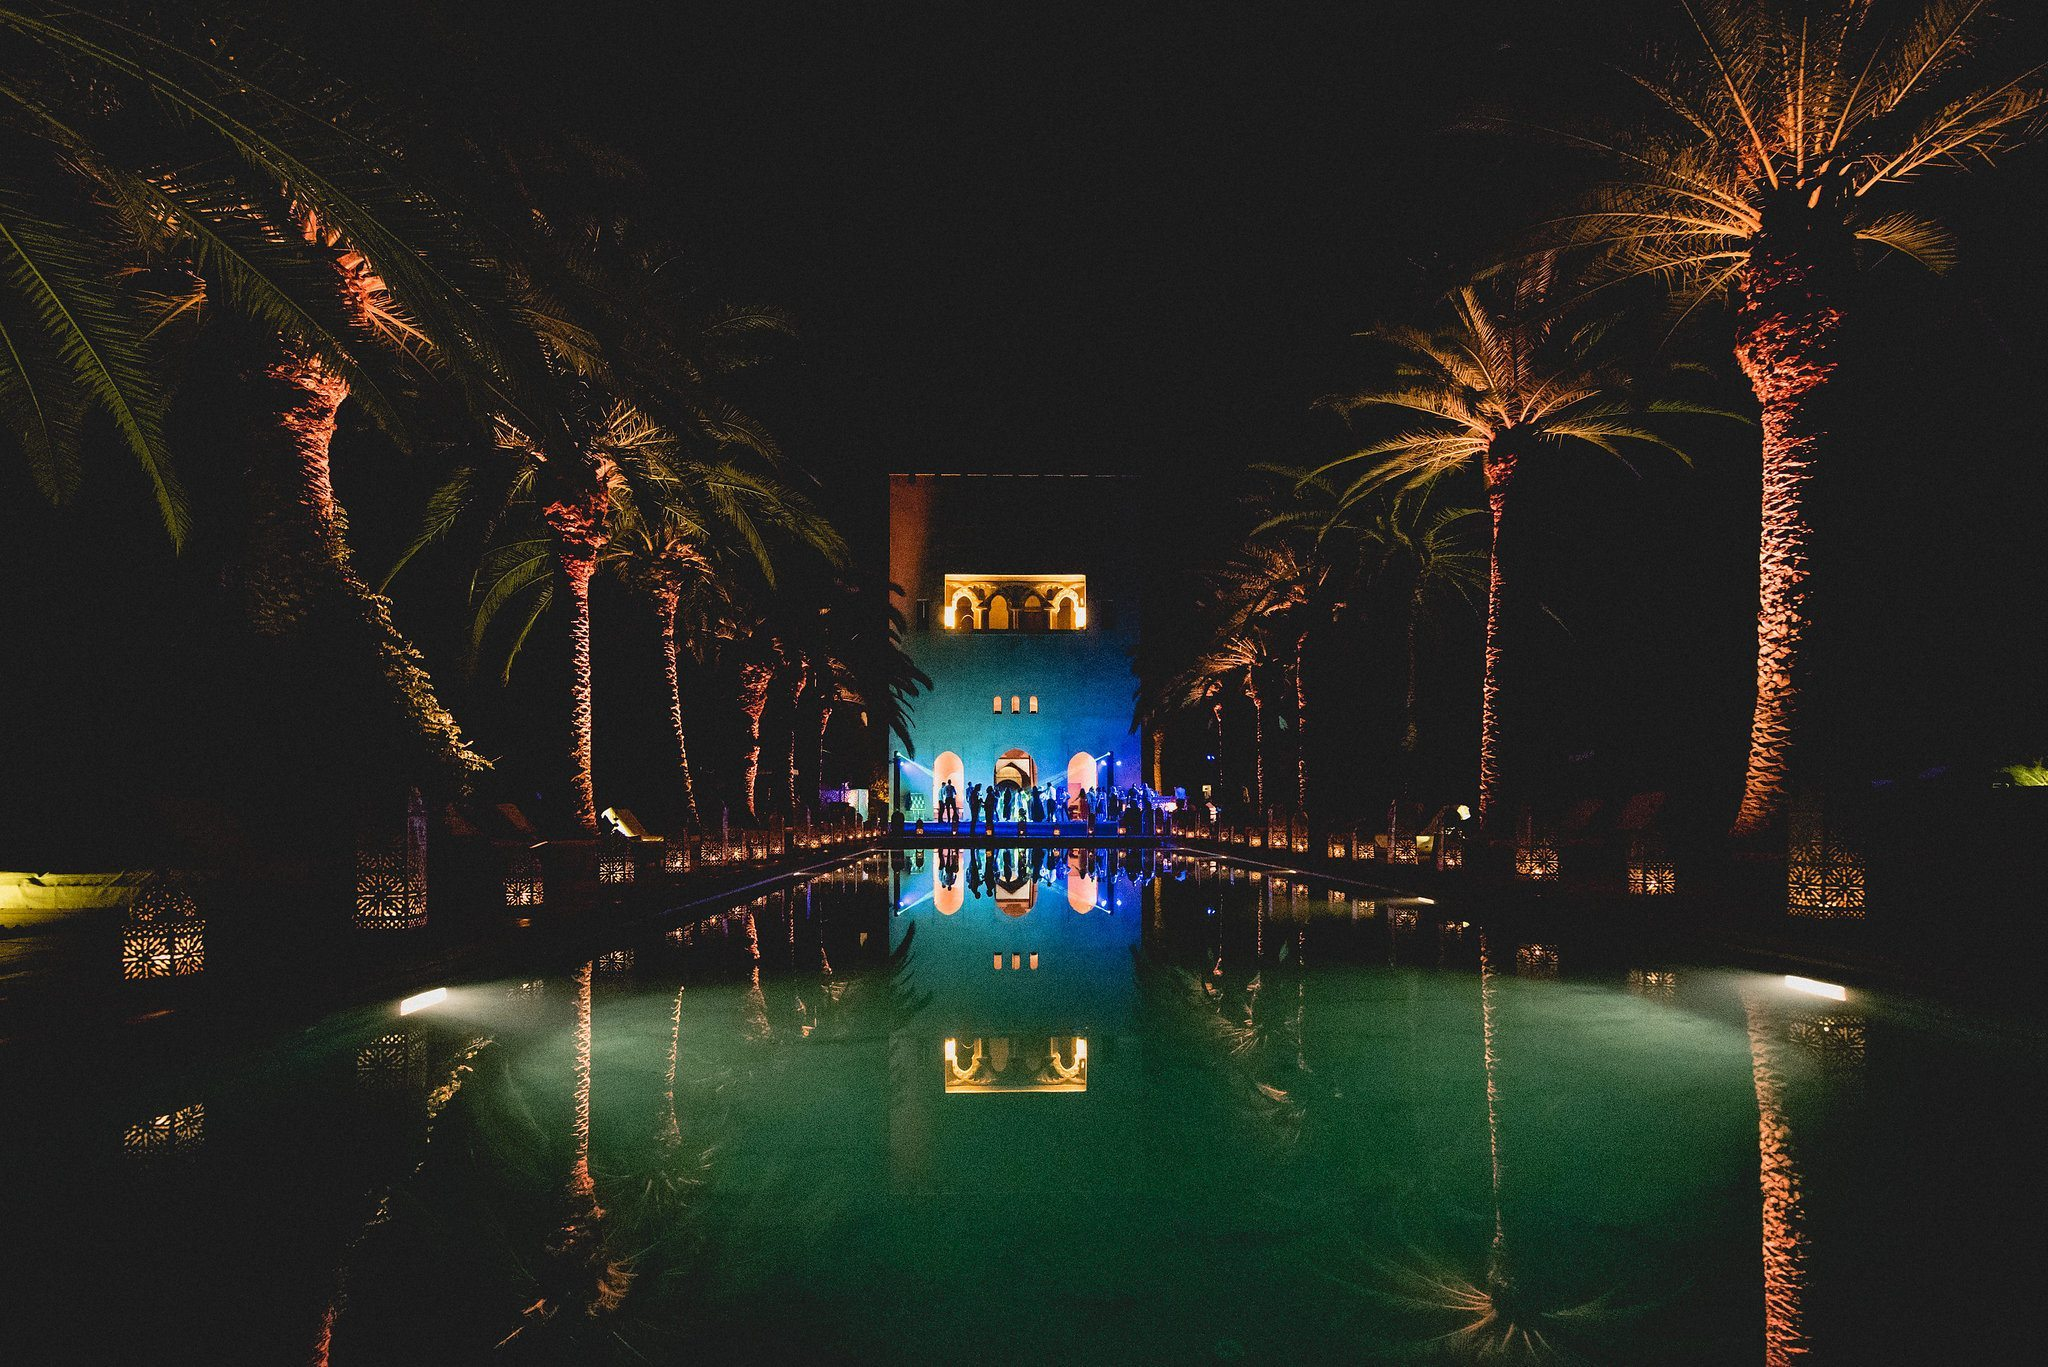 The venue is lit up by party lights and the pool glows as the dancing continues